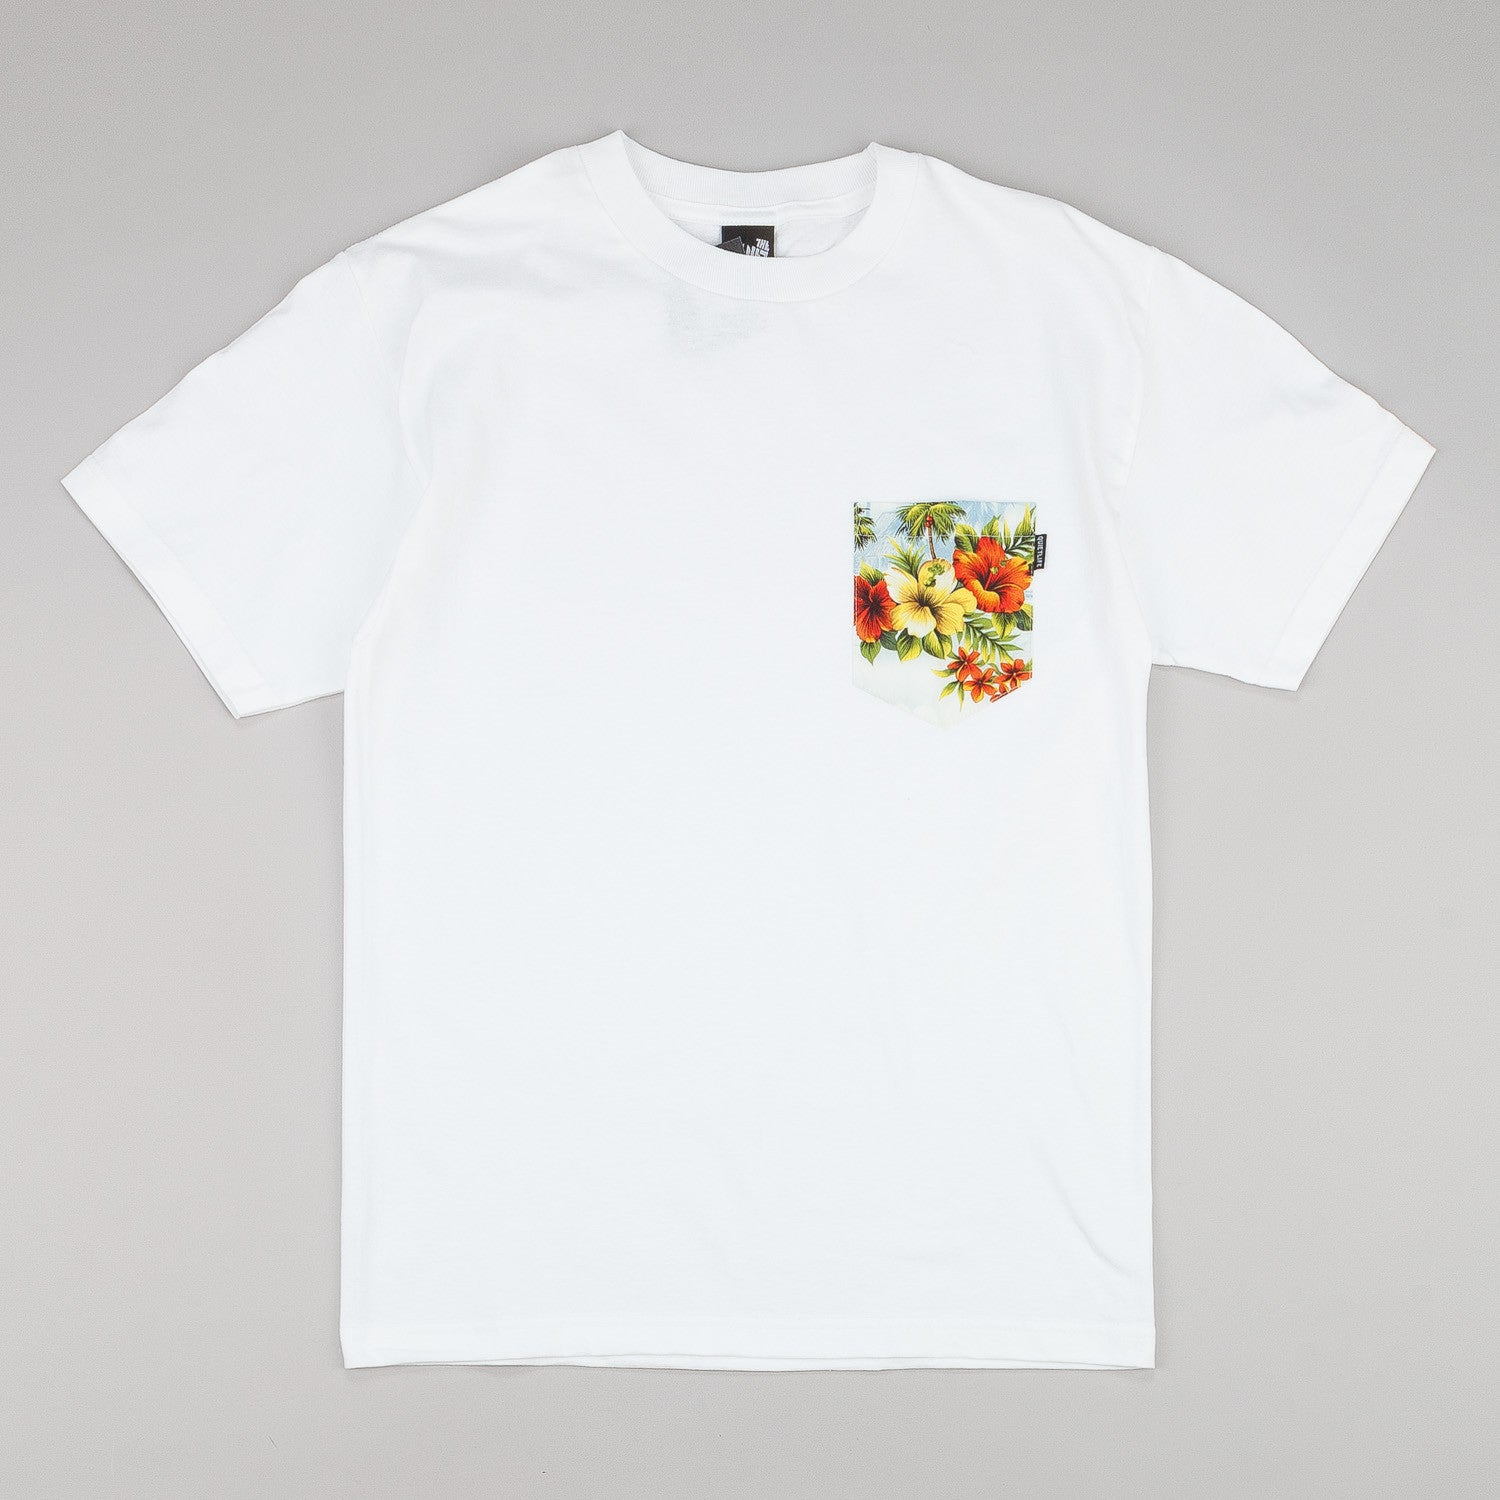 The Quiet Life Hawaiian Pocket T-Shirt